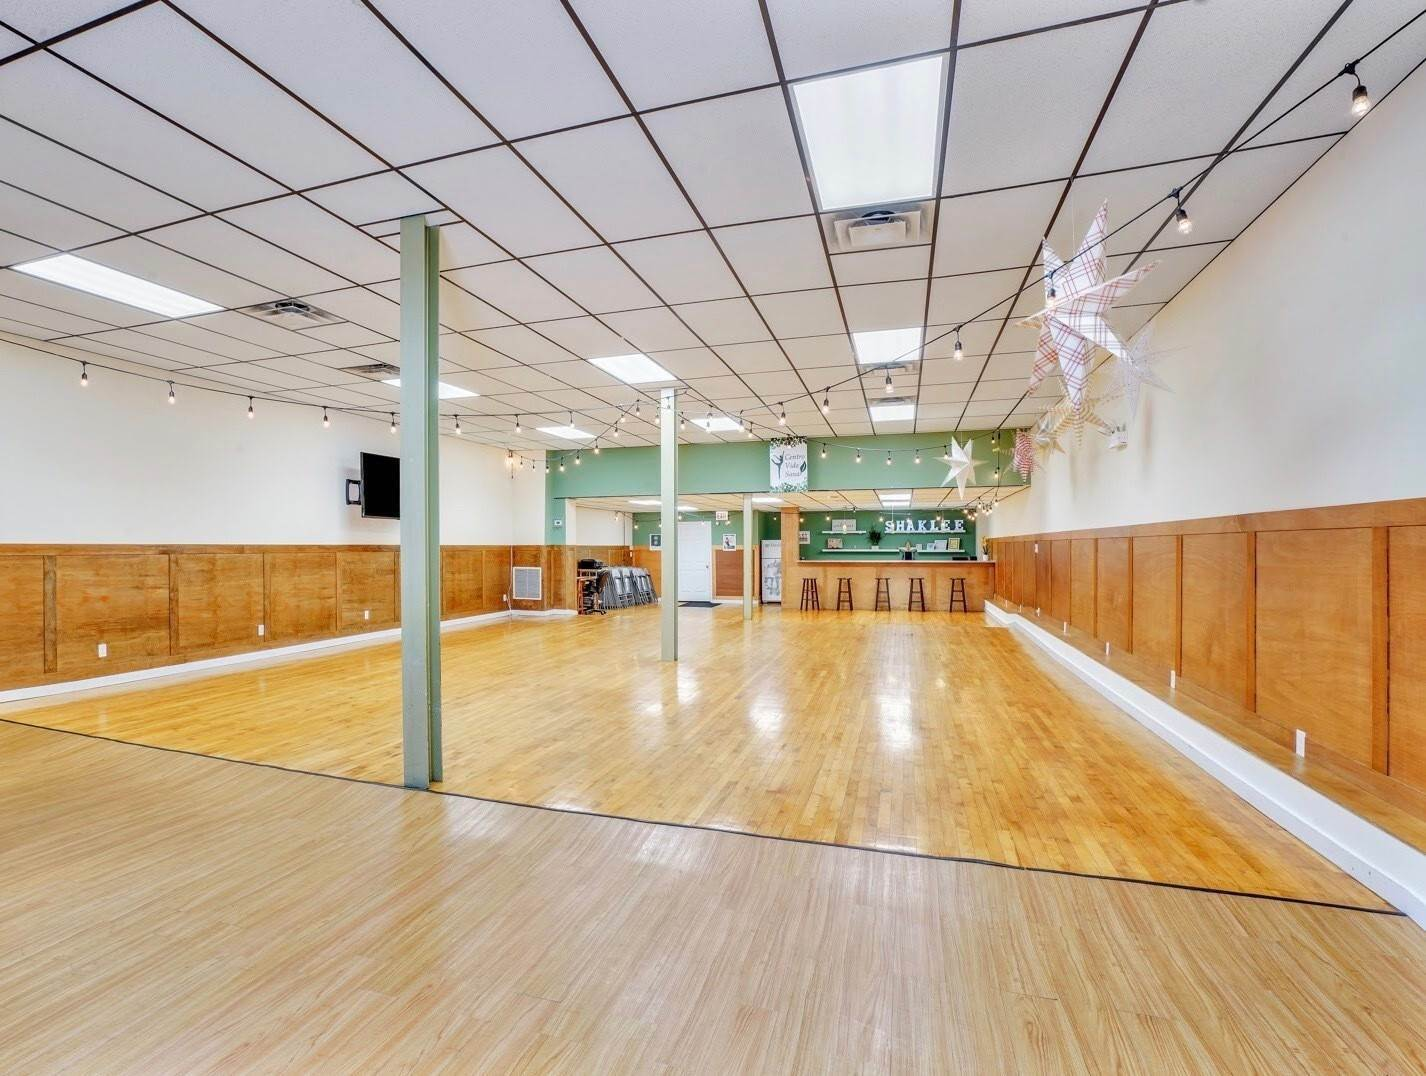 Commercial for Sale at 2410 S Central Avenue Cicero, Illinois 60804 United States